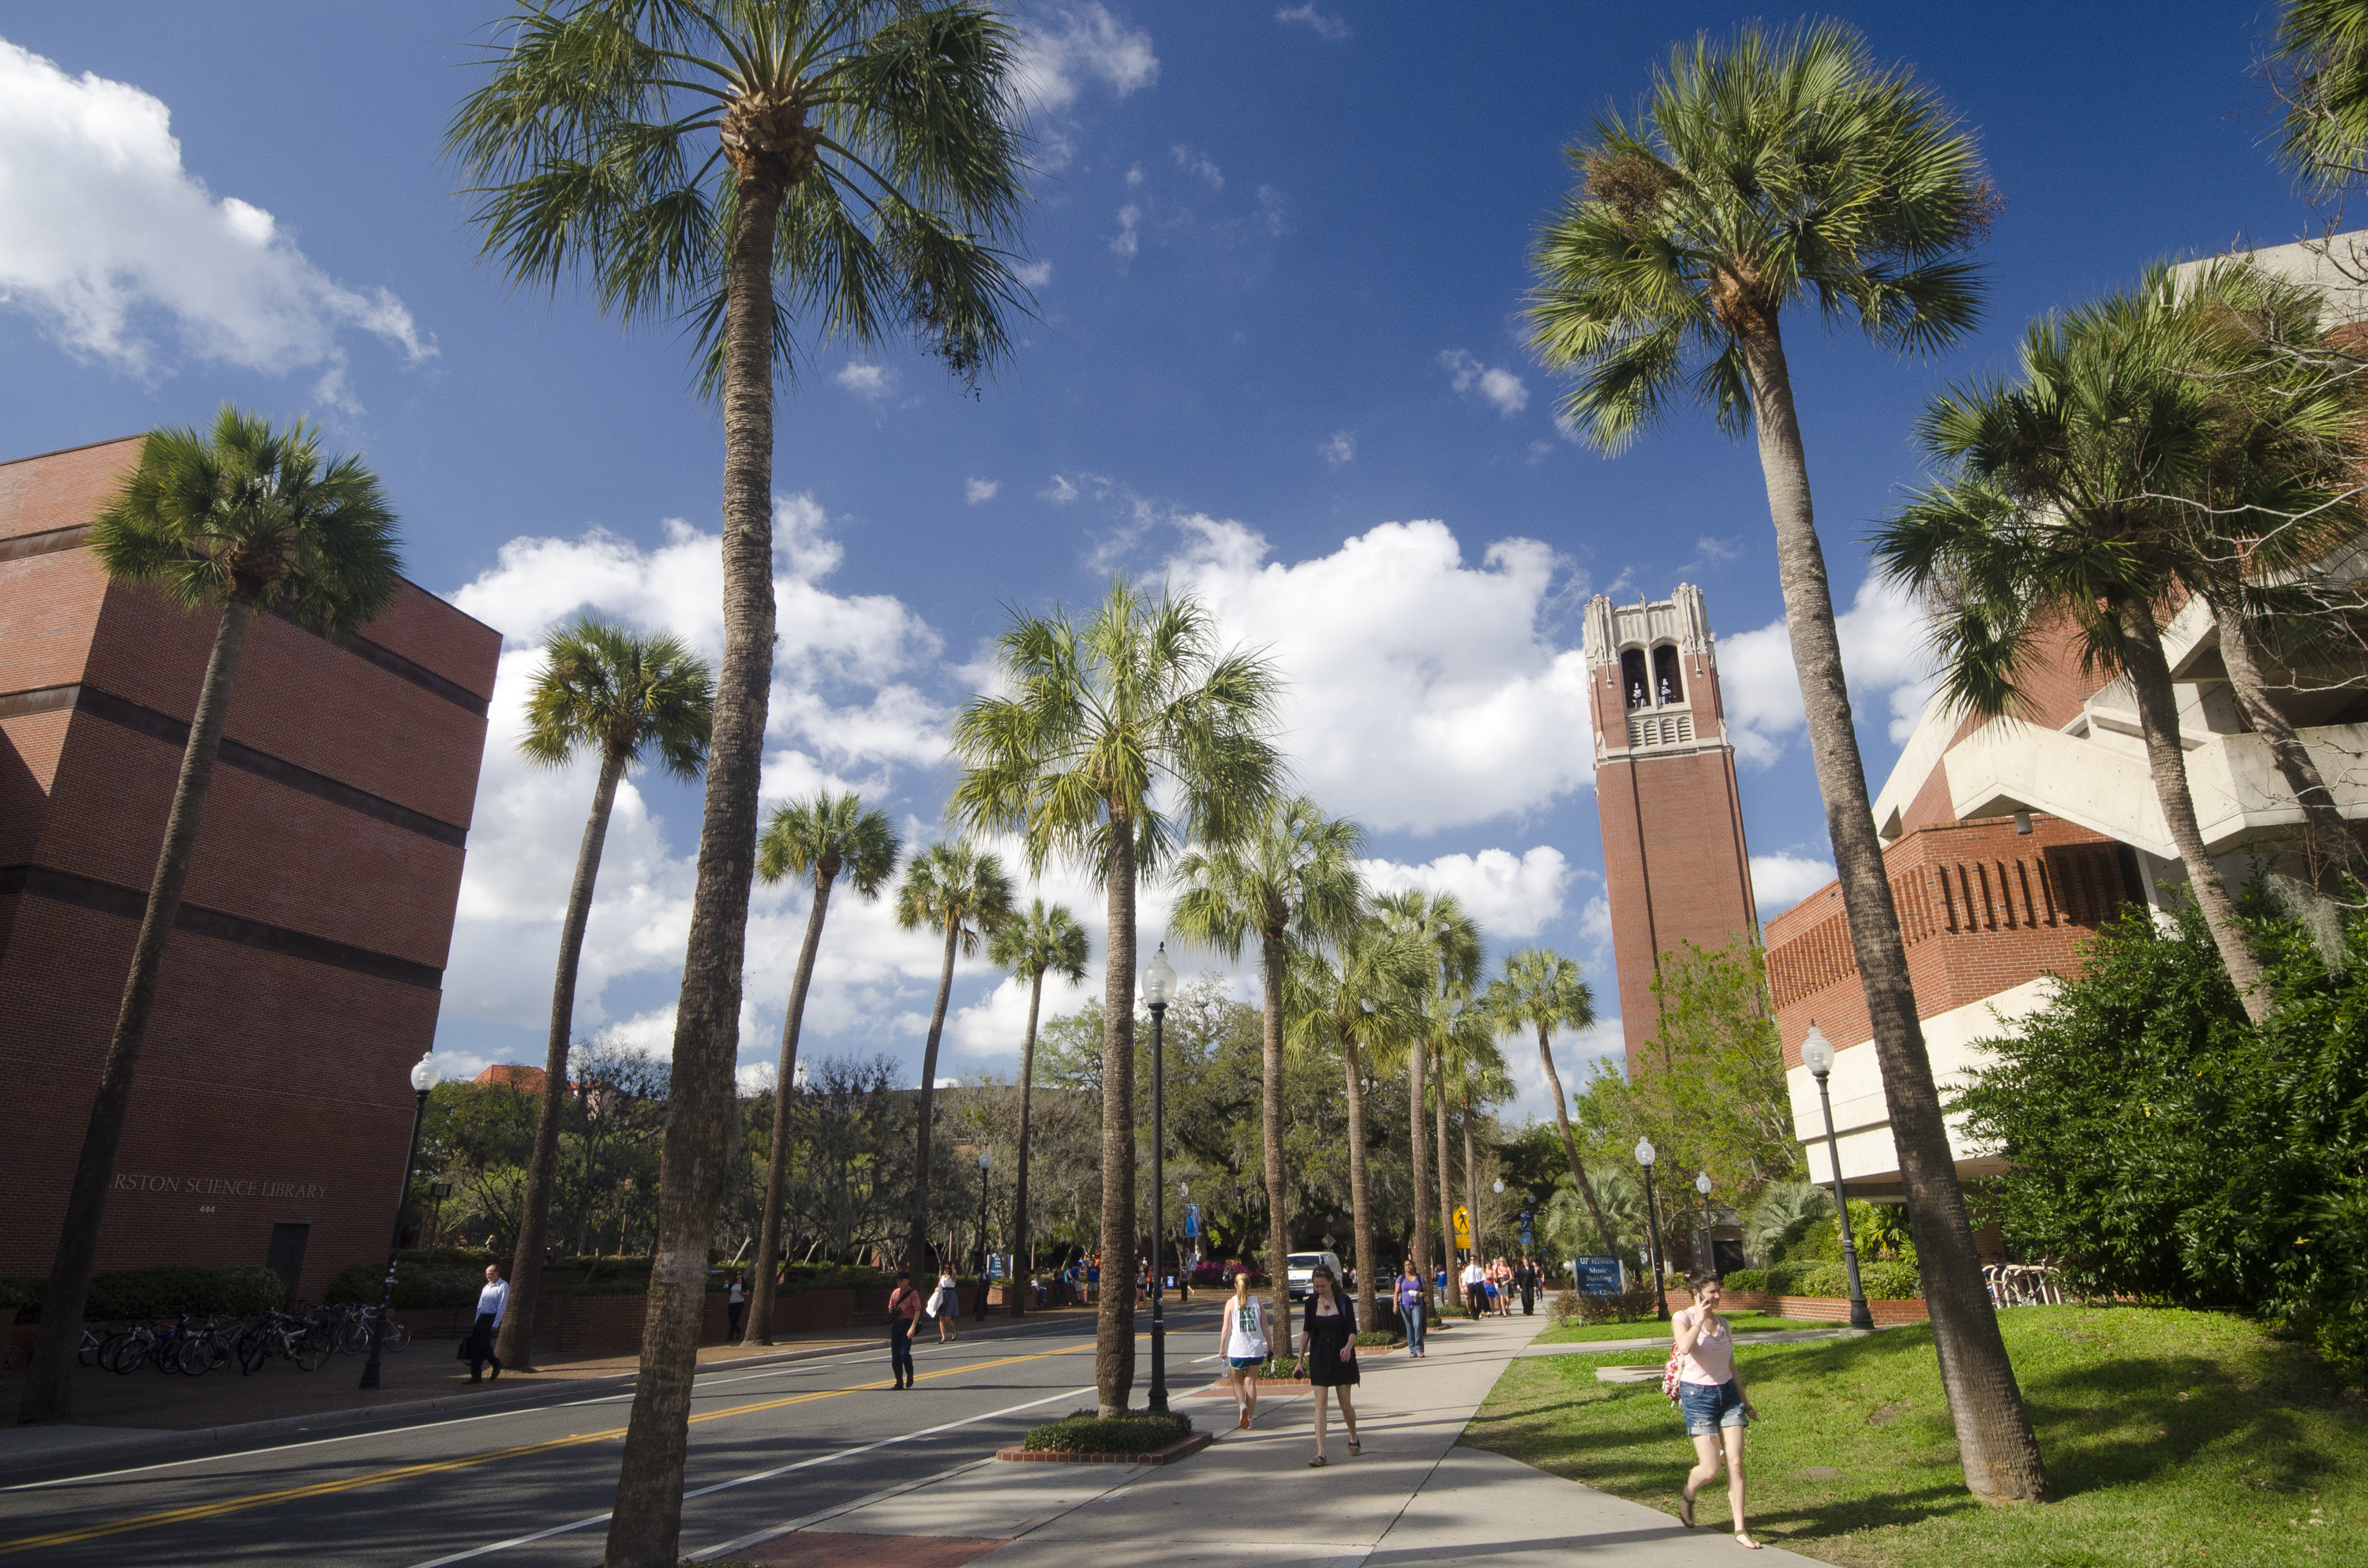 Students wander the University of Florida campus. Photo by University of Florida